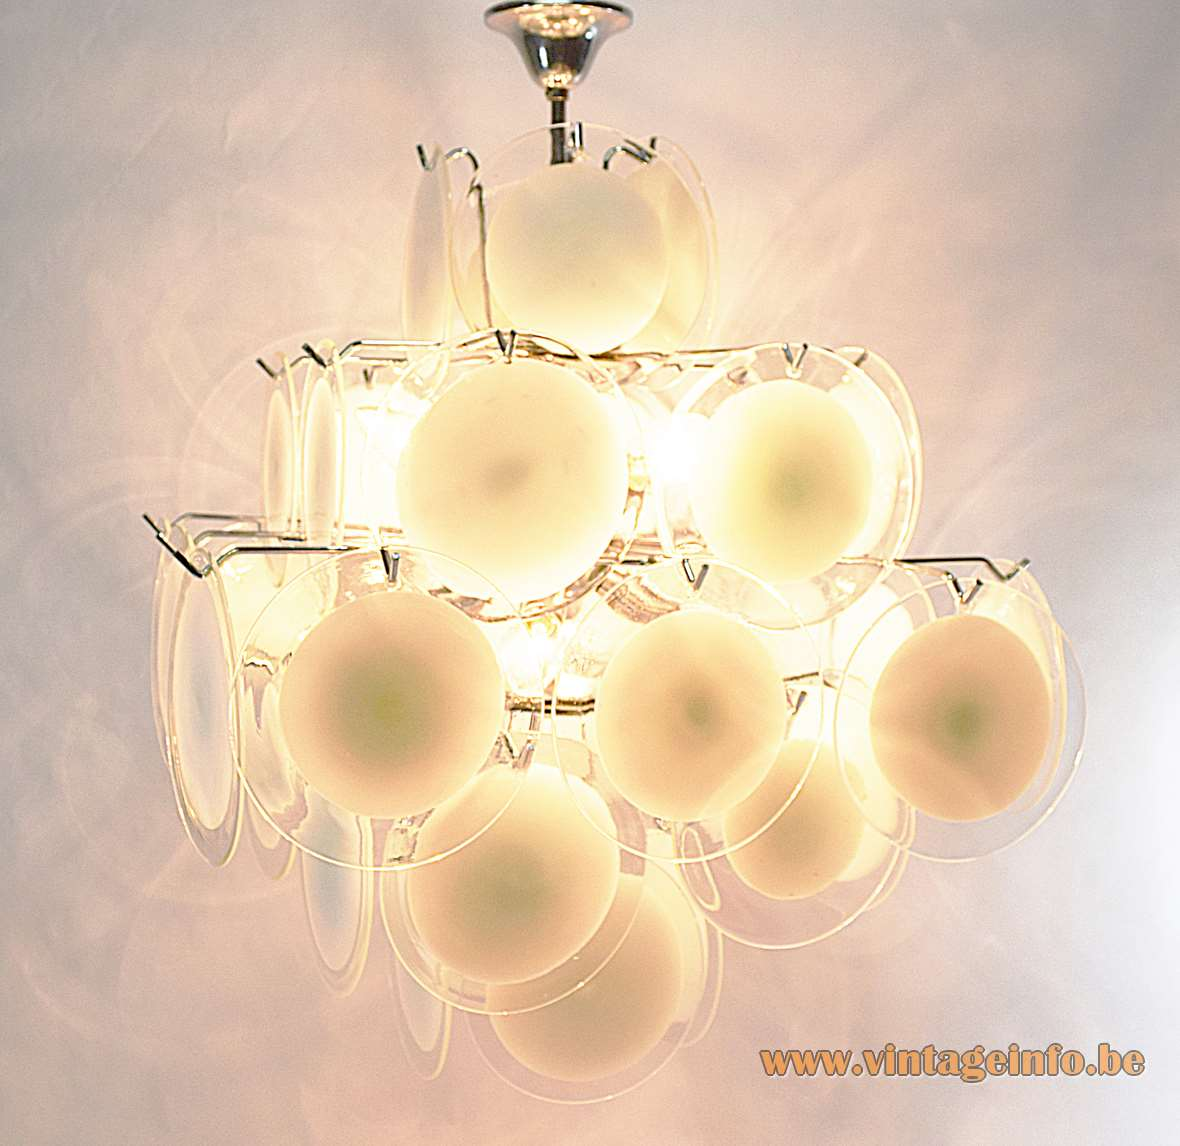 Gino vistosi white and translucent discs chandelier vintage info gino vistosi white and translucent disc chandelier aloadofball Gallery